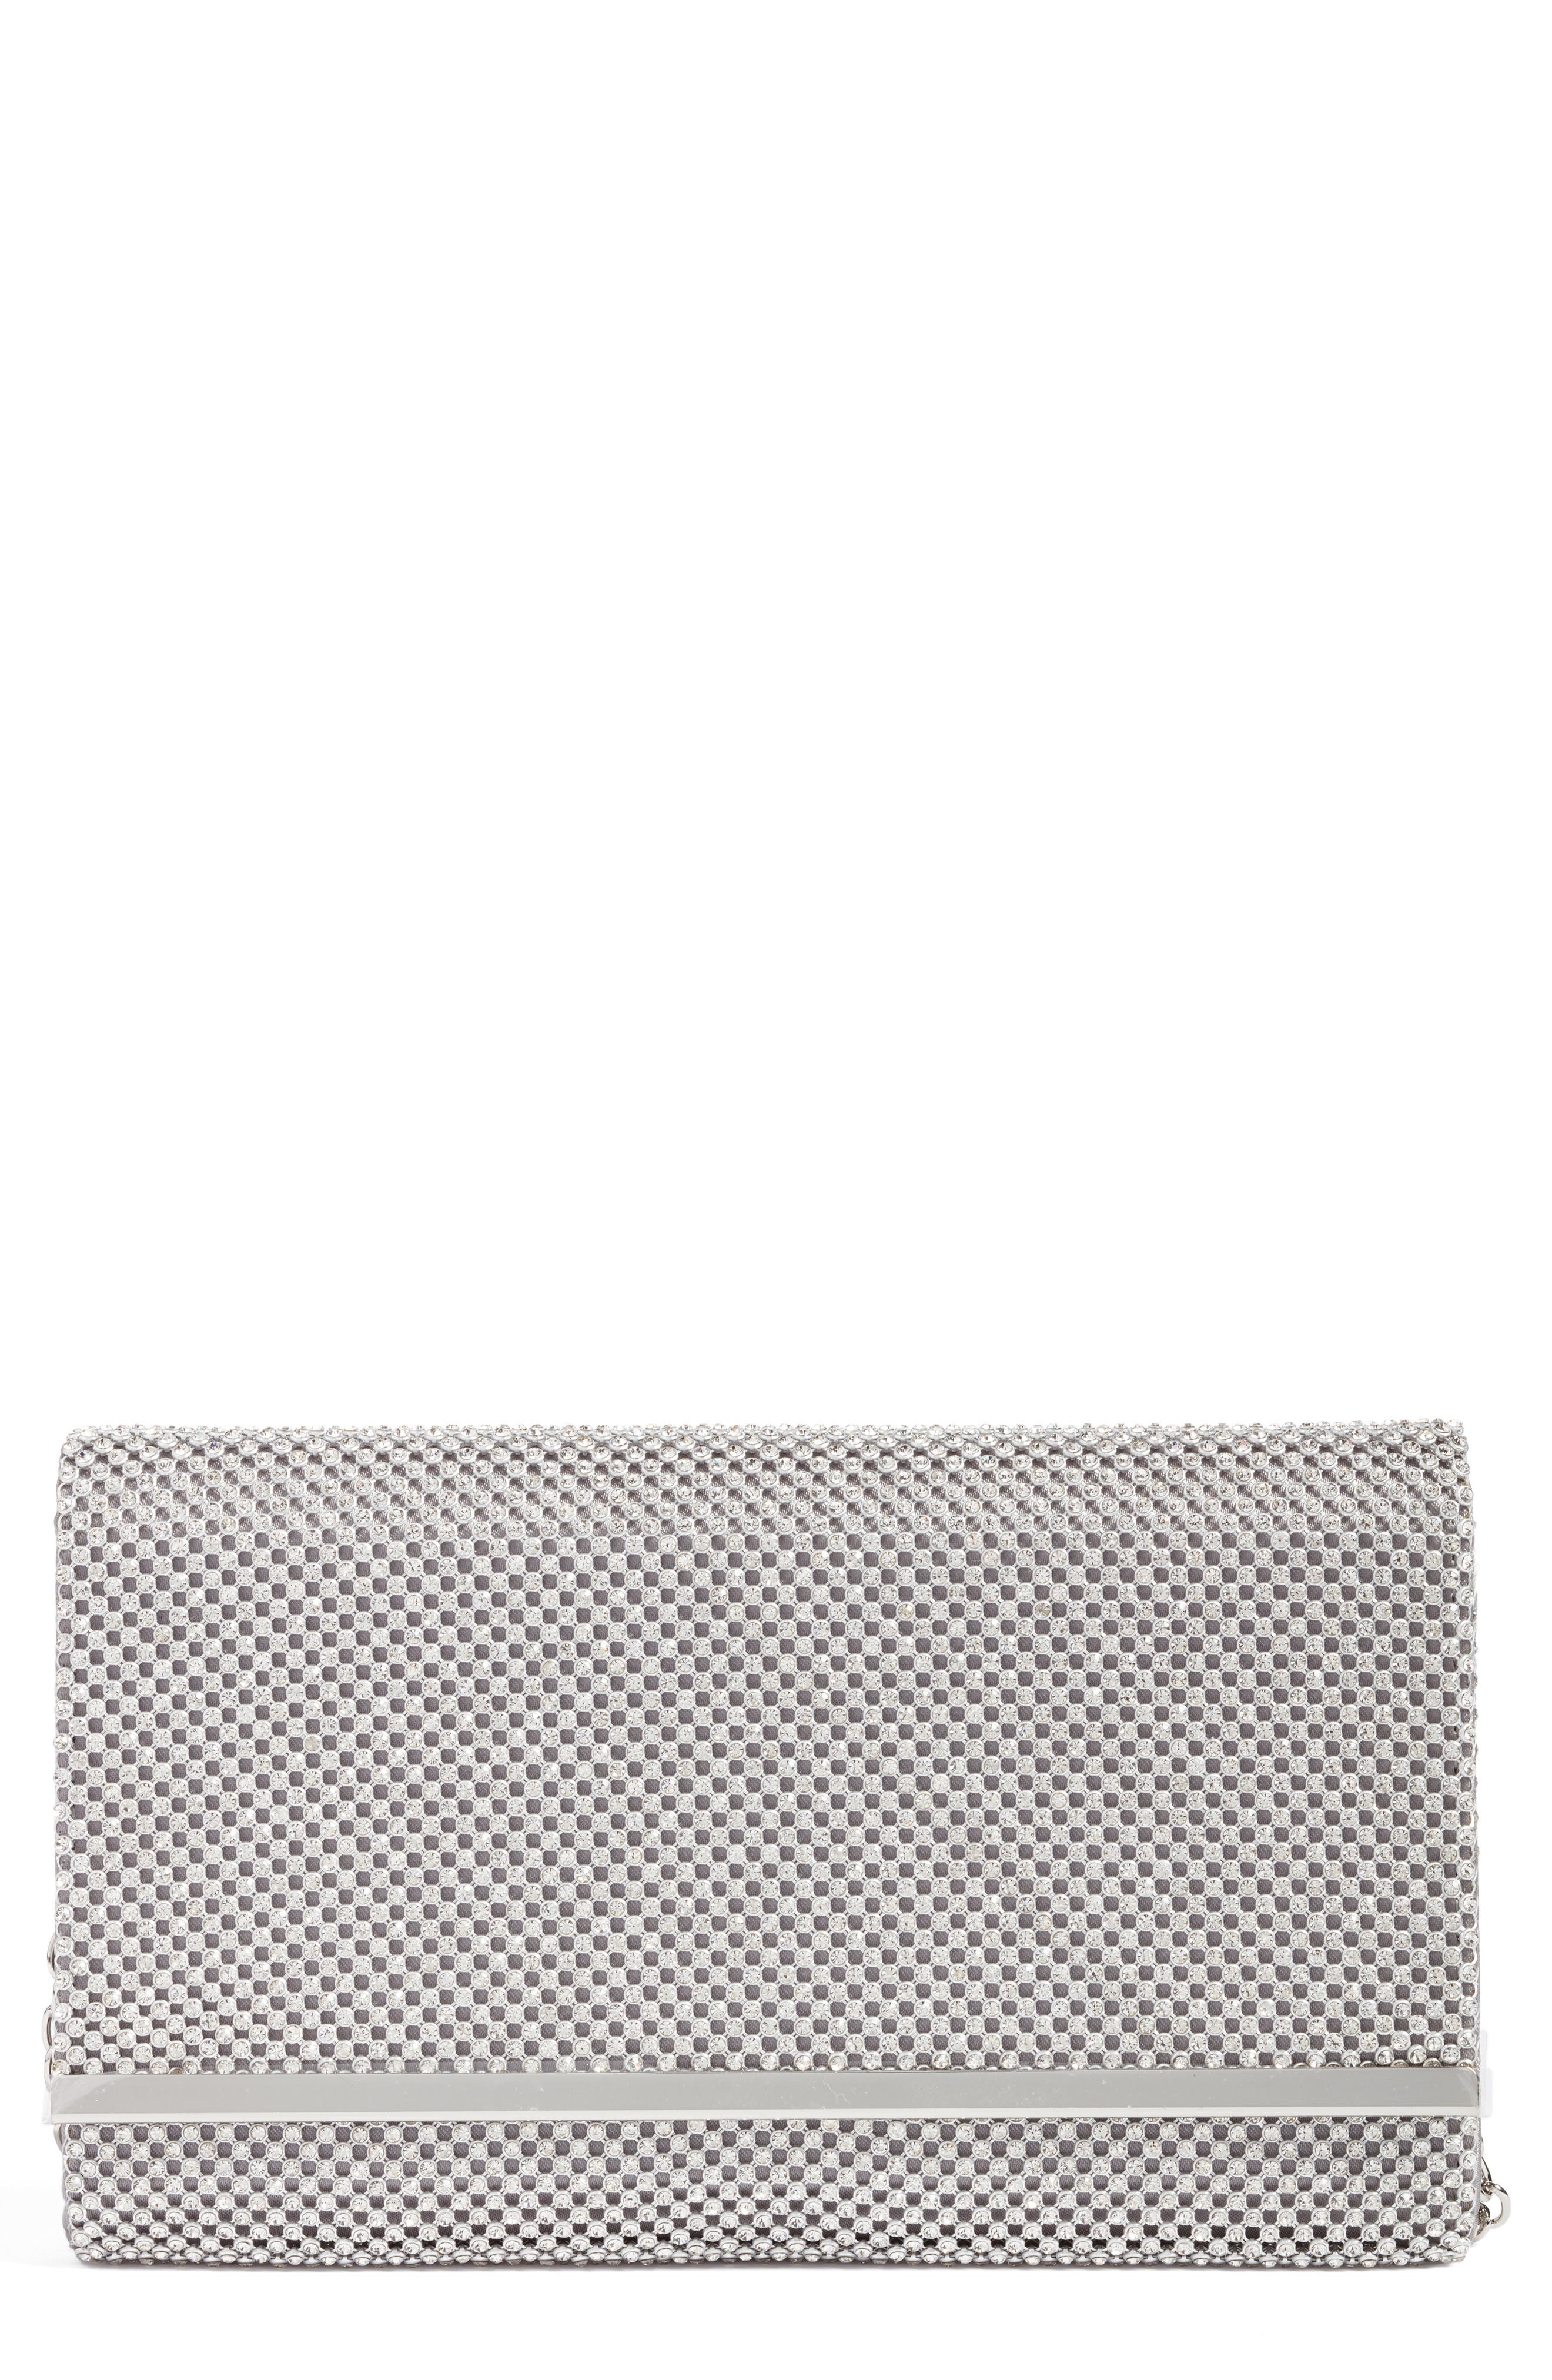 Crystal-dotted metal mesh adds extravagant sparkle and shine to a trim flap clutch outfitted with a convenient drop-in chain strap. Style Name: Nordstrom Crystal Mesh Bar Clutch. Style Number: 5356618 1. Available in stores.